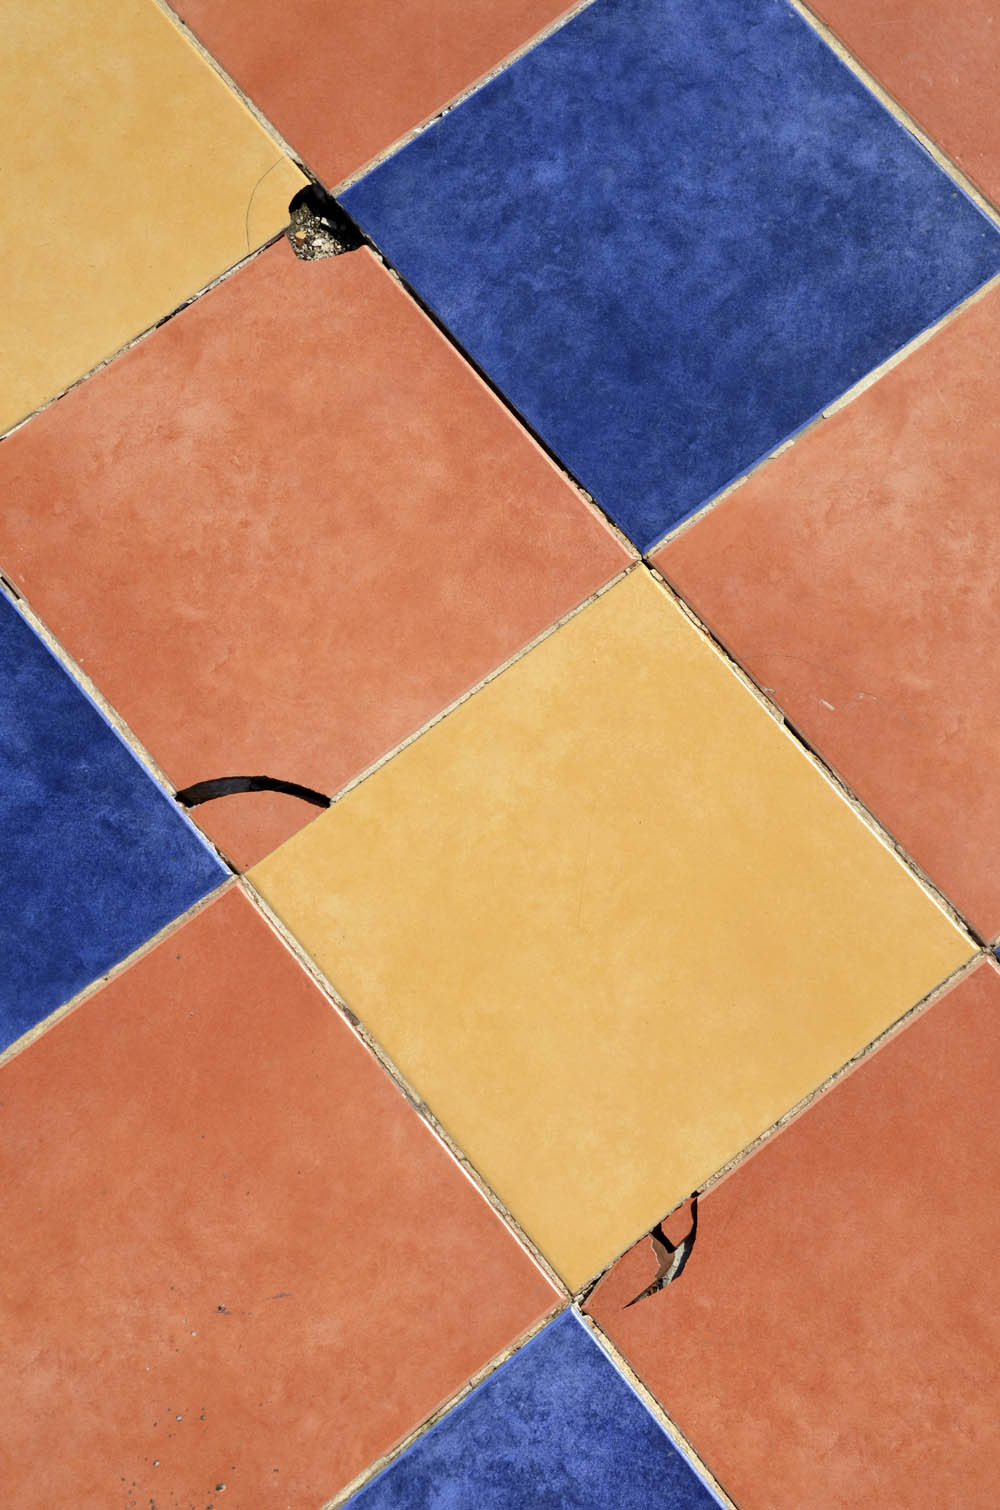 How to Fix Old Tile in a Fixer Upper